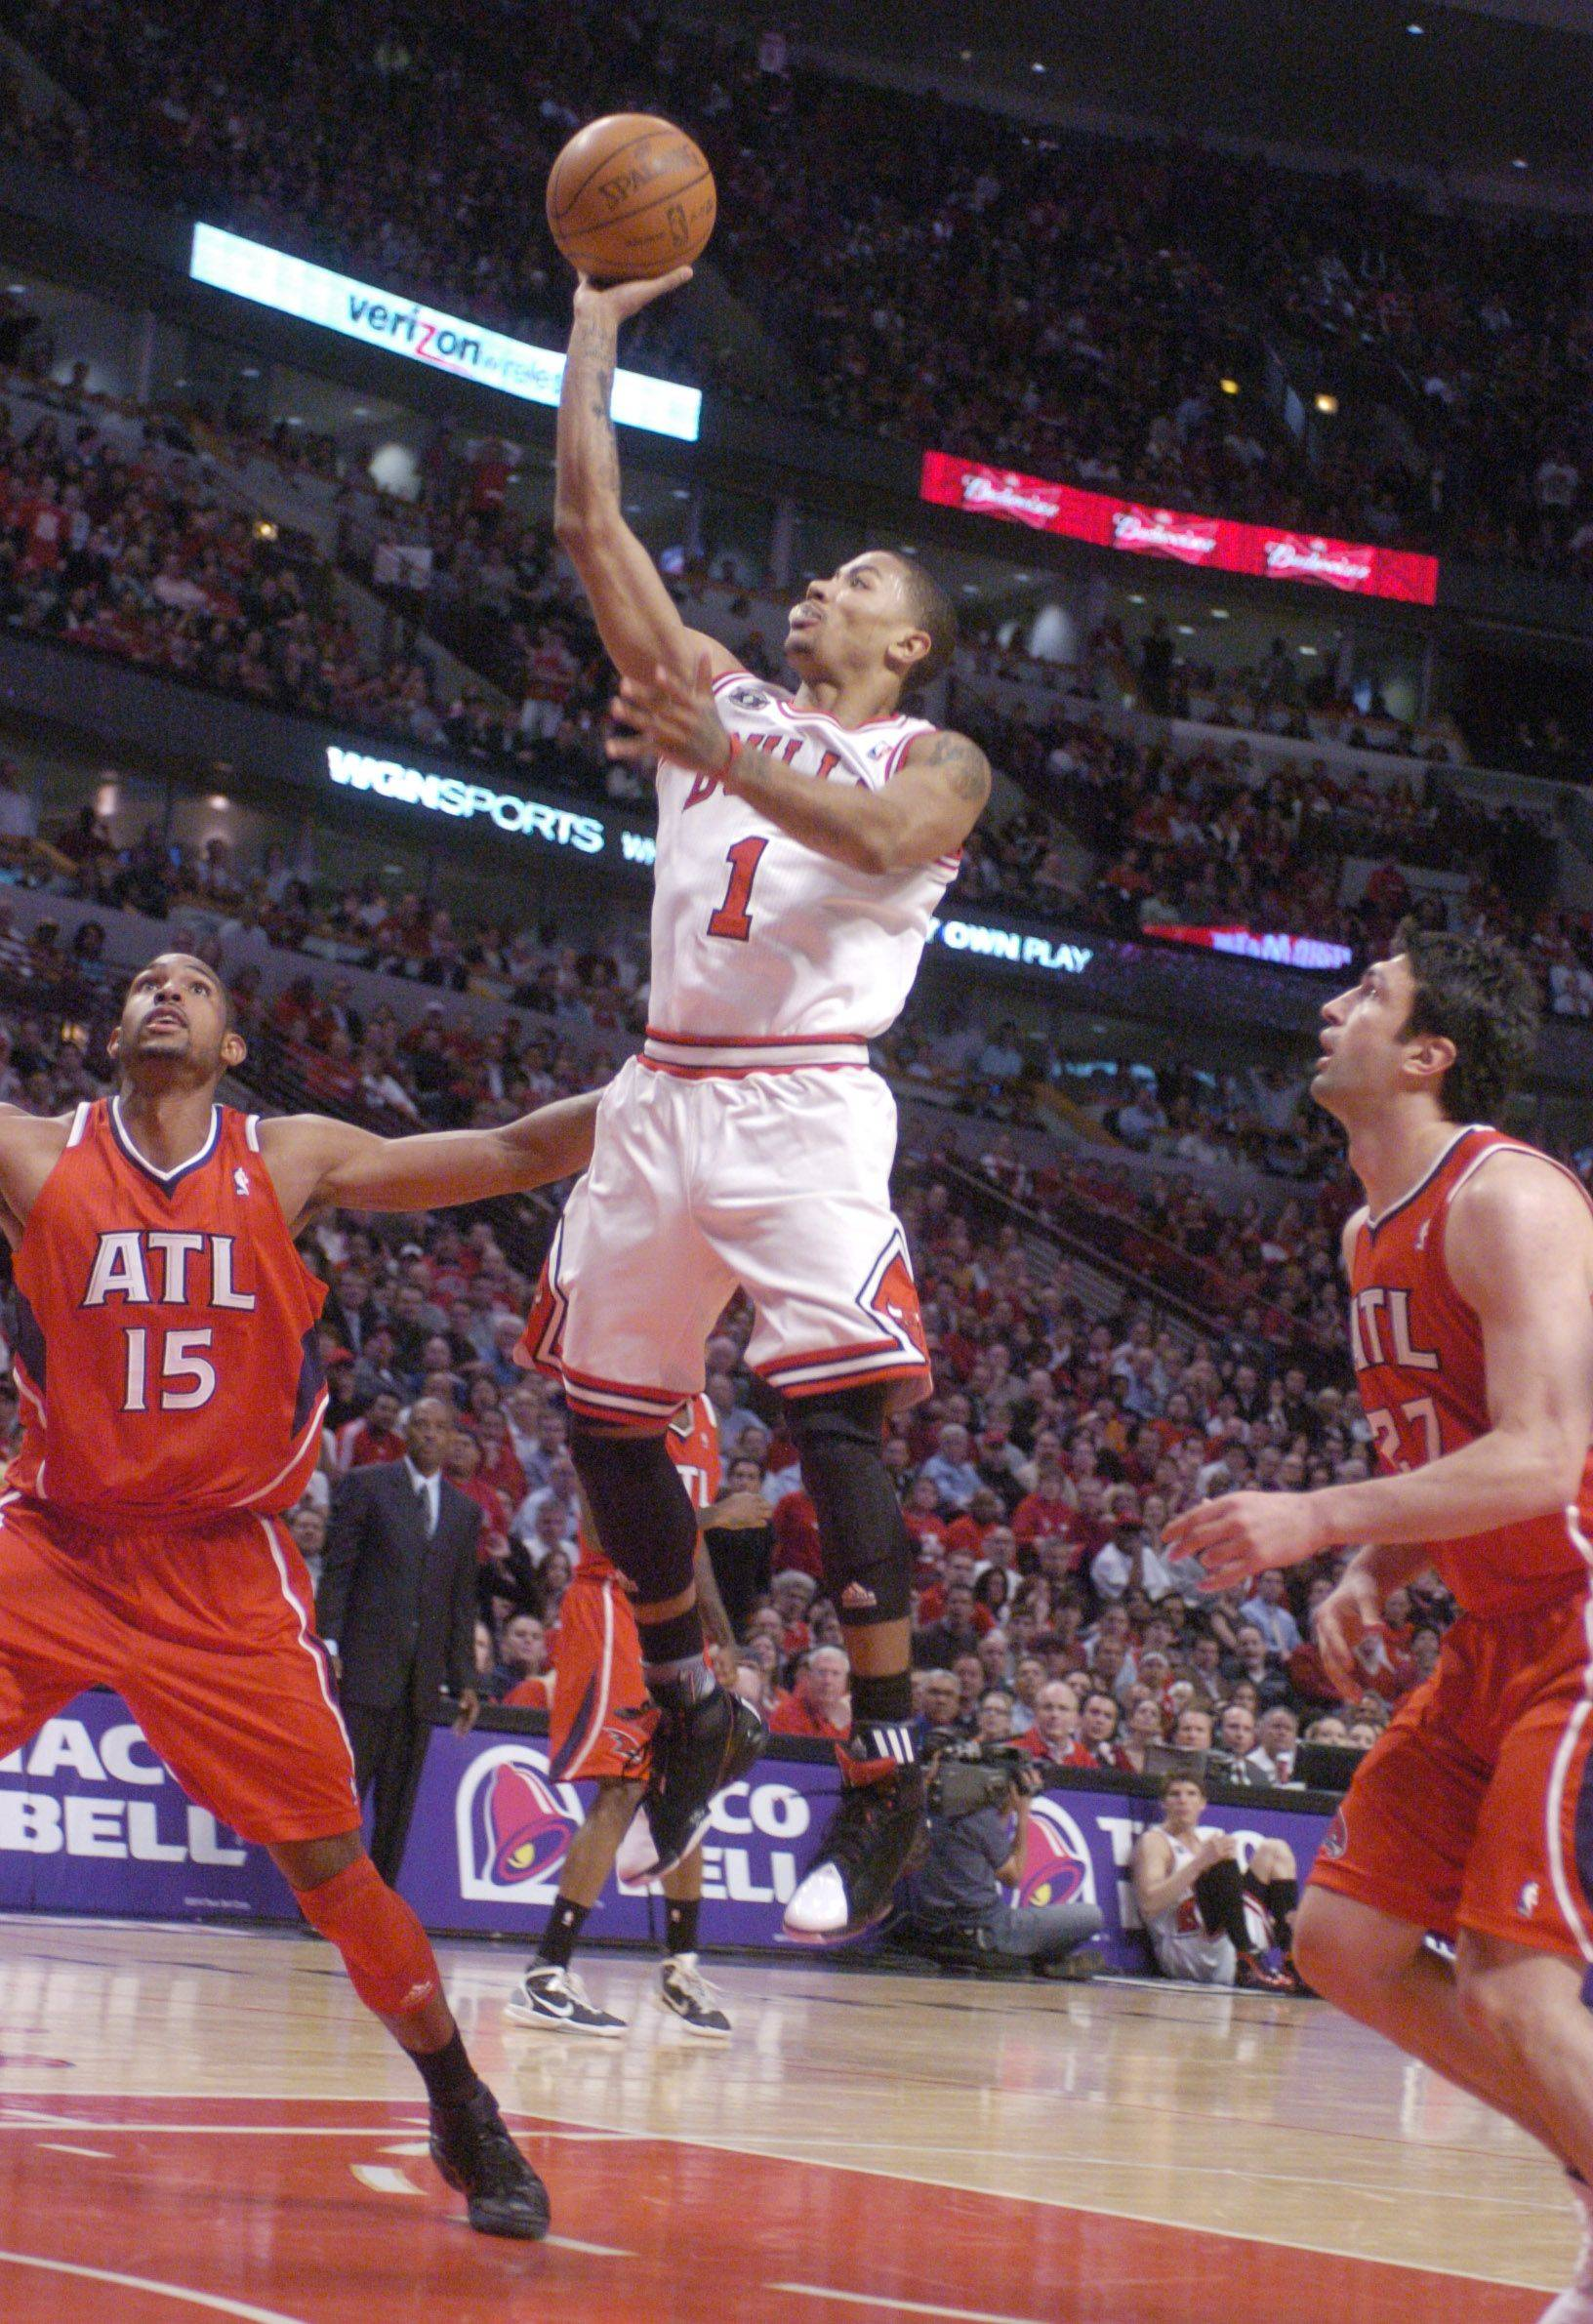 Derrick Rose of the Bulls shoots a jump shot between Al Horford, left, and Zaza Pachulia of the Atlanta Hawks during Monday's game at the United Center.